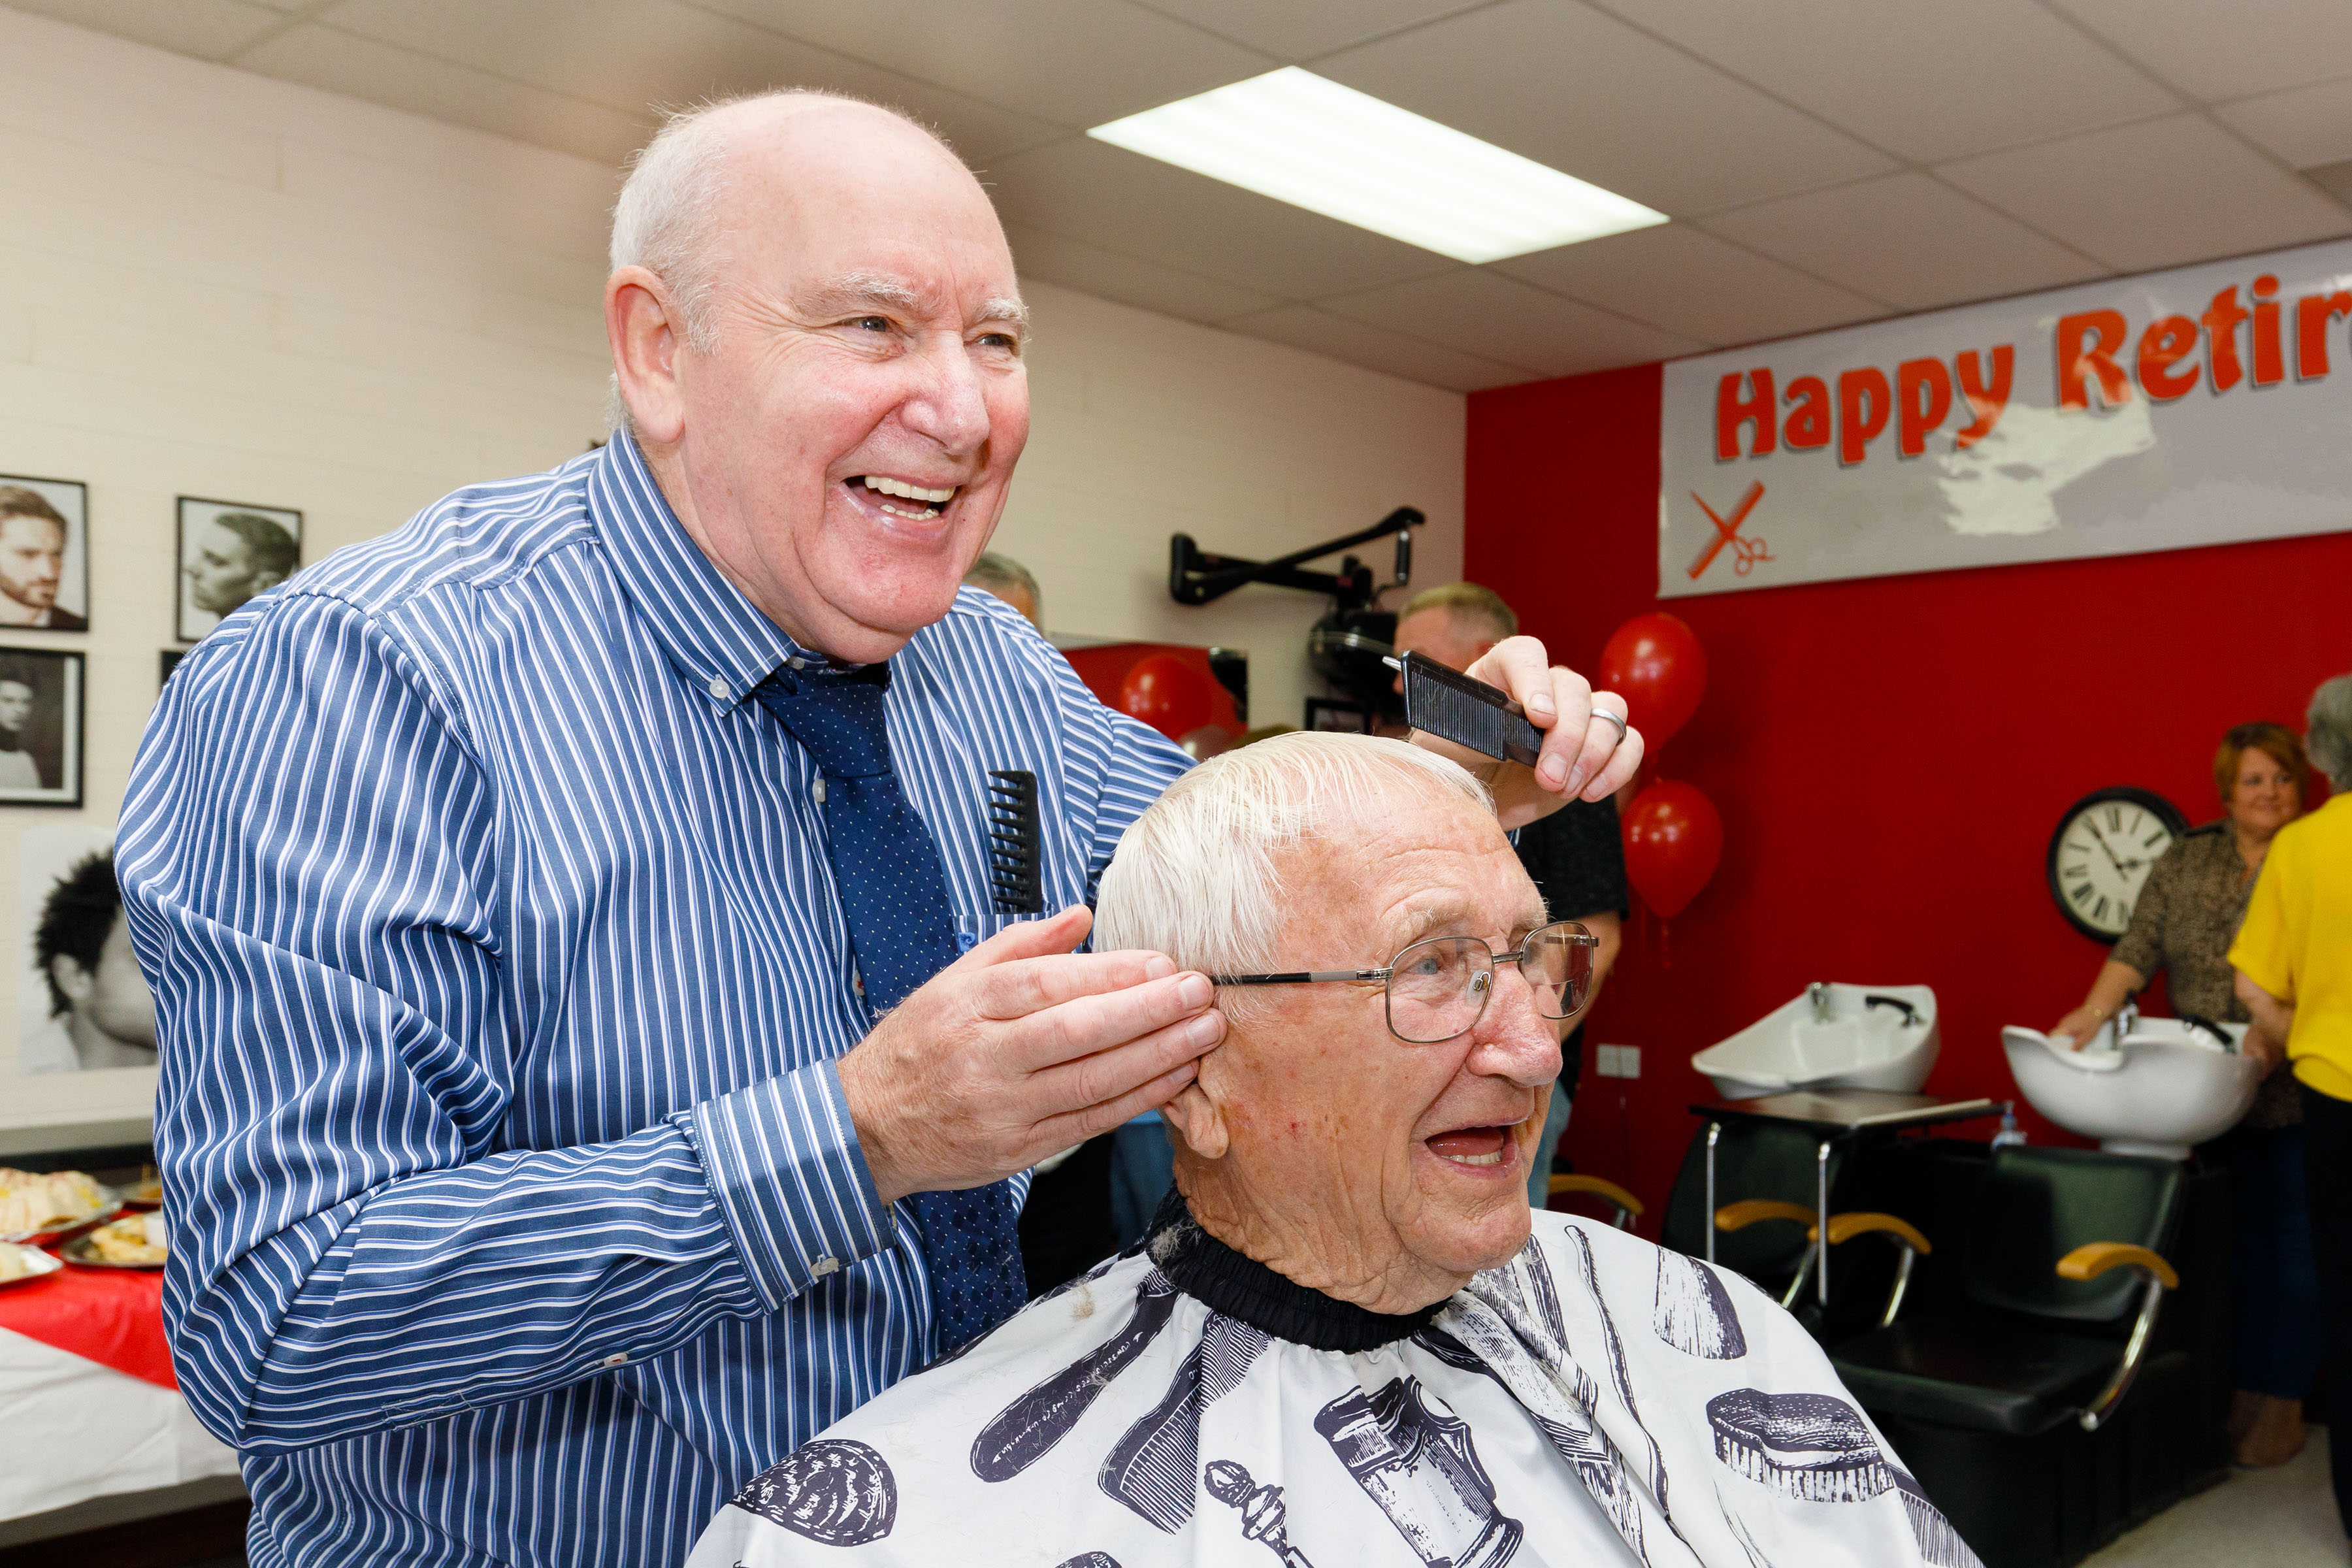 71-year-old Scottish barber hangs up his scissors after over 350k